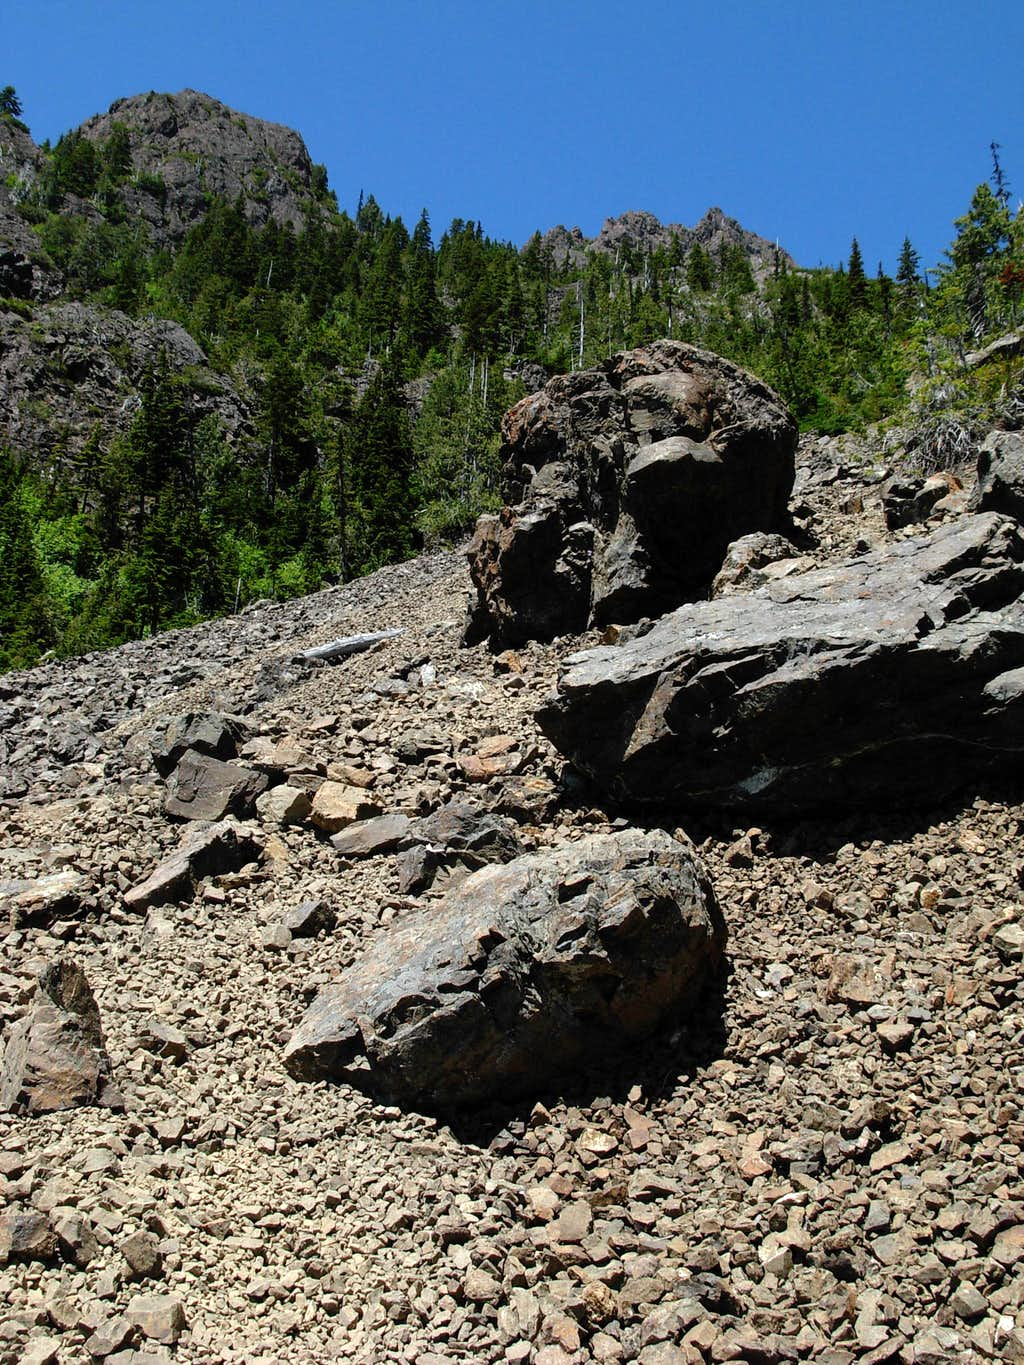 Section #2: Scree Slope